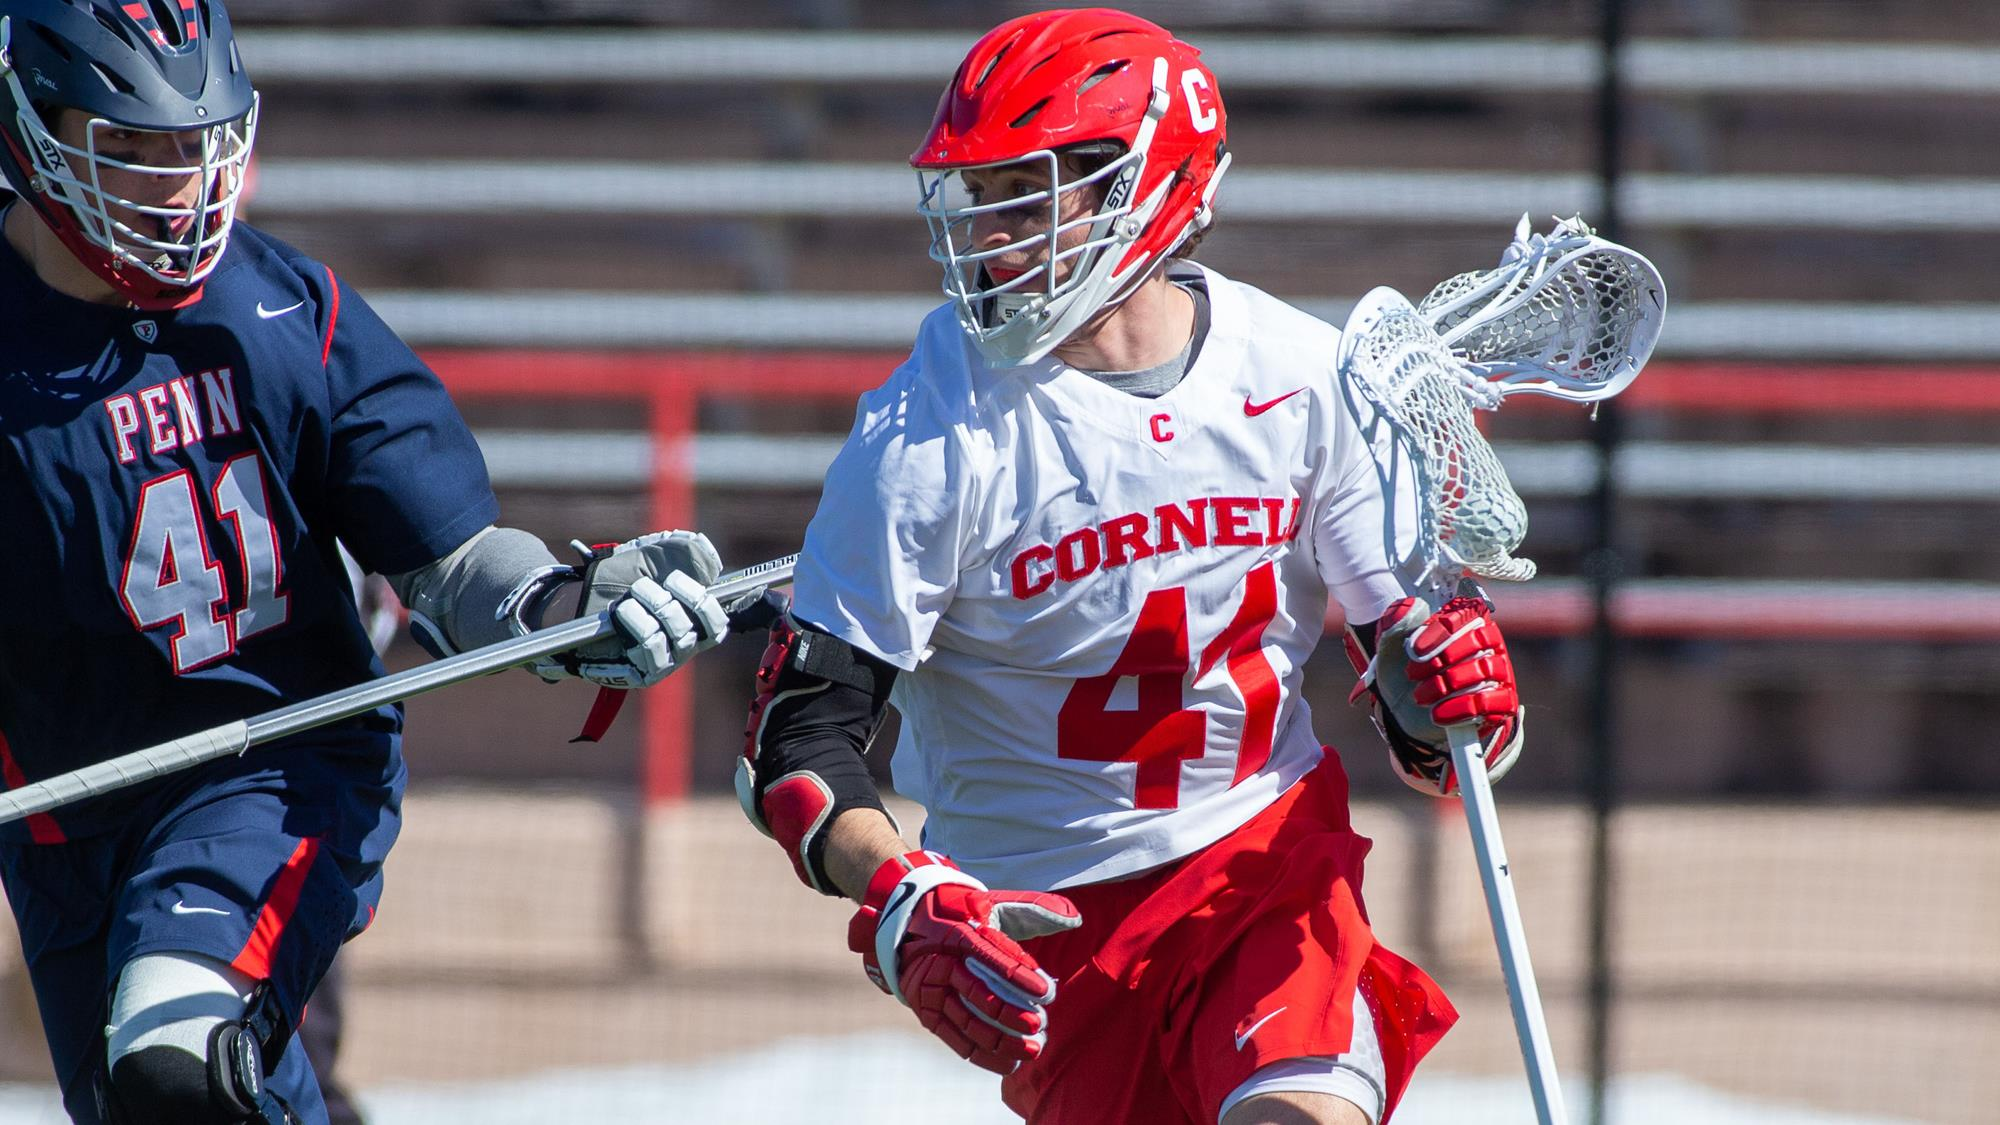 John Piatelli attacks a defender during the Cornell Big Red men's lacrosse team's contest against Penn on March 23, 2019 on Schoellkopf Field in Ithaca, N.Y.